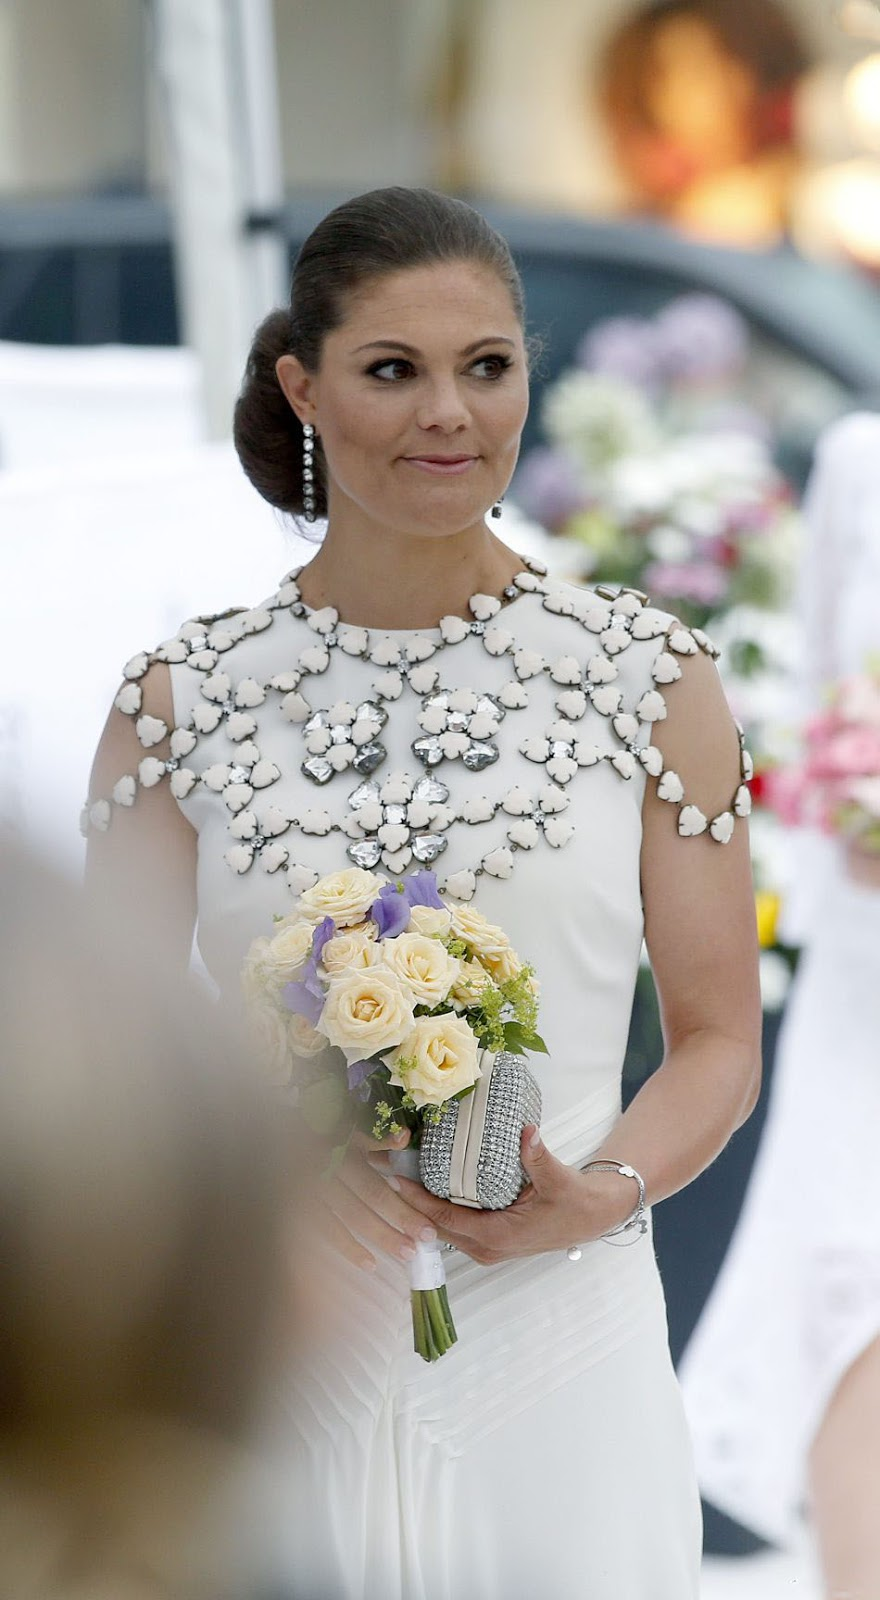 Swedish Crown Braid Tutorial: Royal Family Around The World: Swedish Royals Attends The